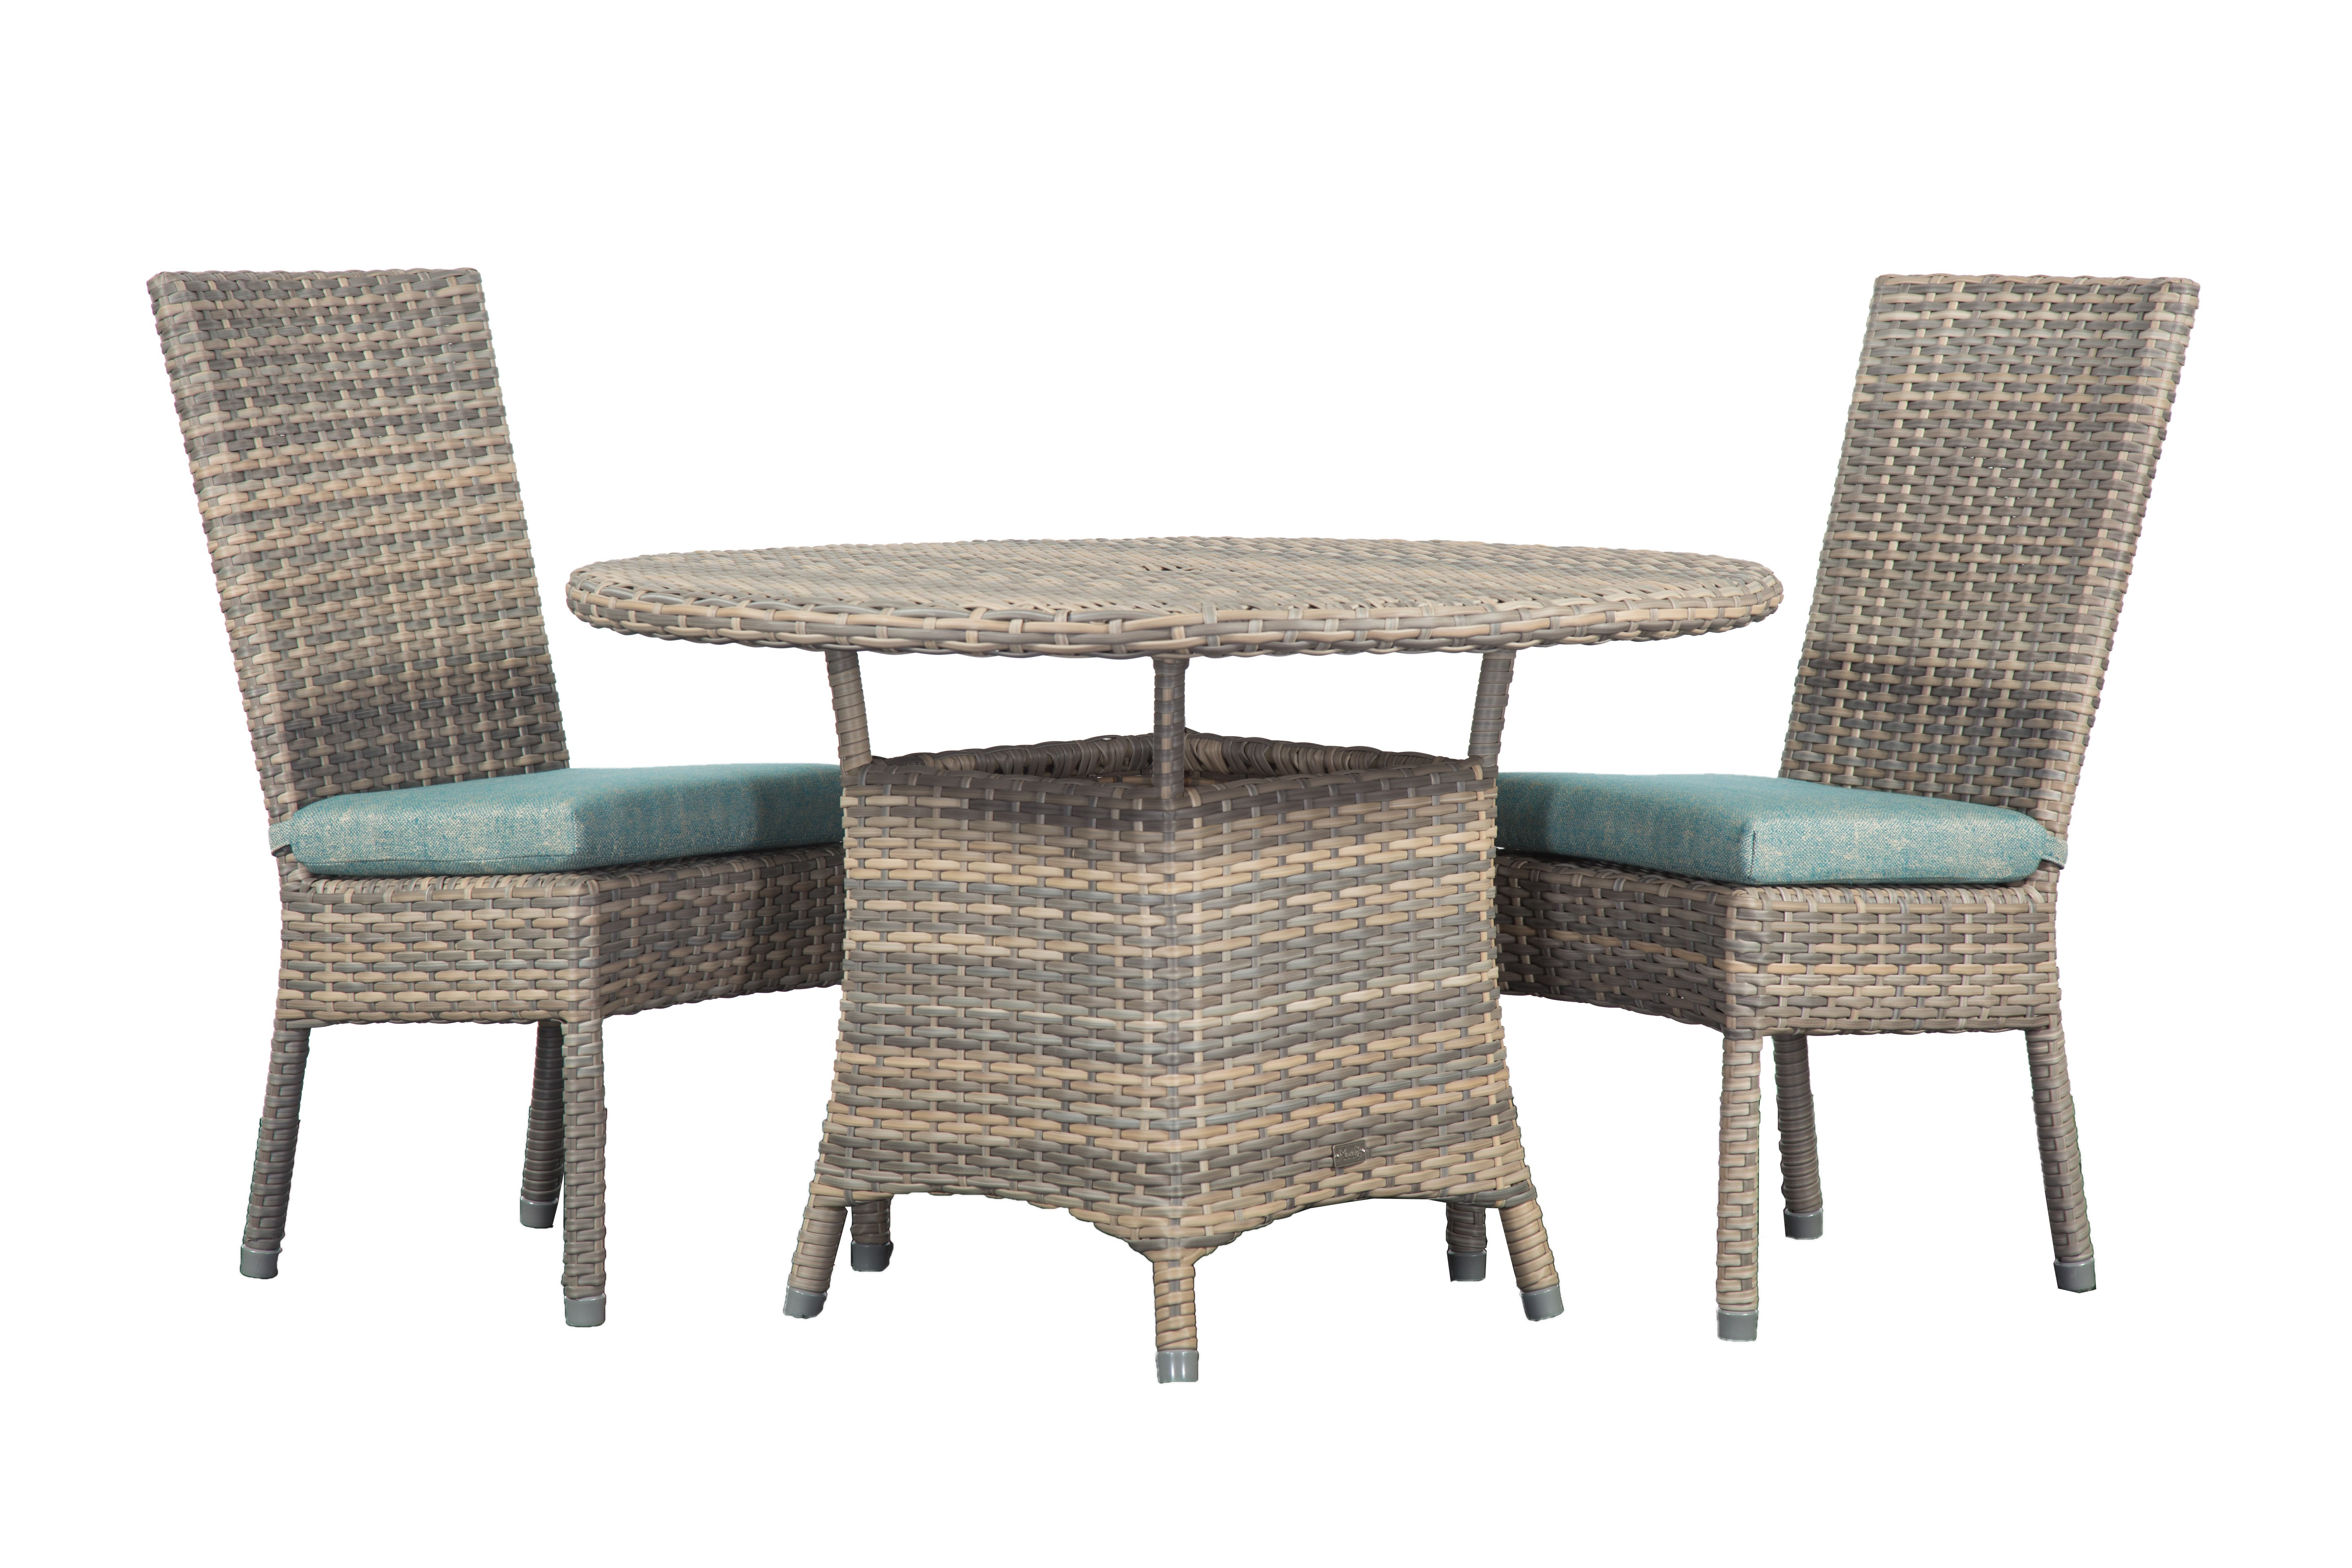 Outdoor wicker dining and barstools redbarn furniture for Beach craft rattan furniture